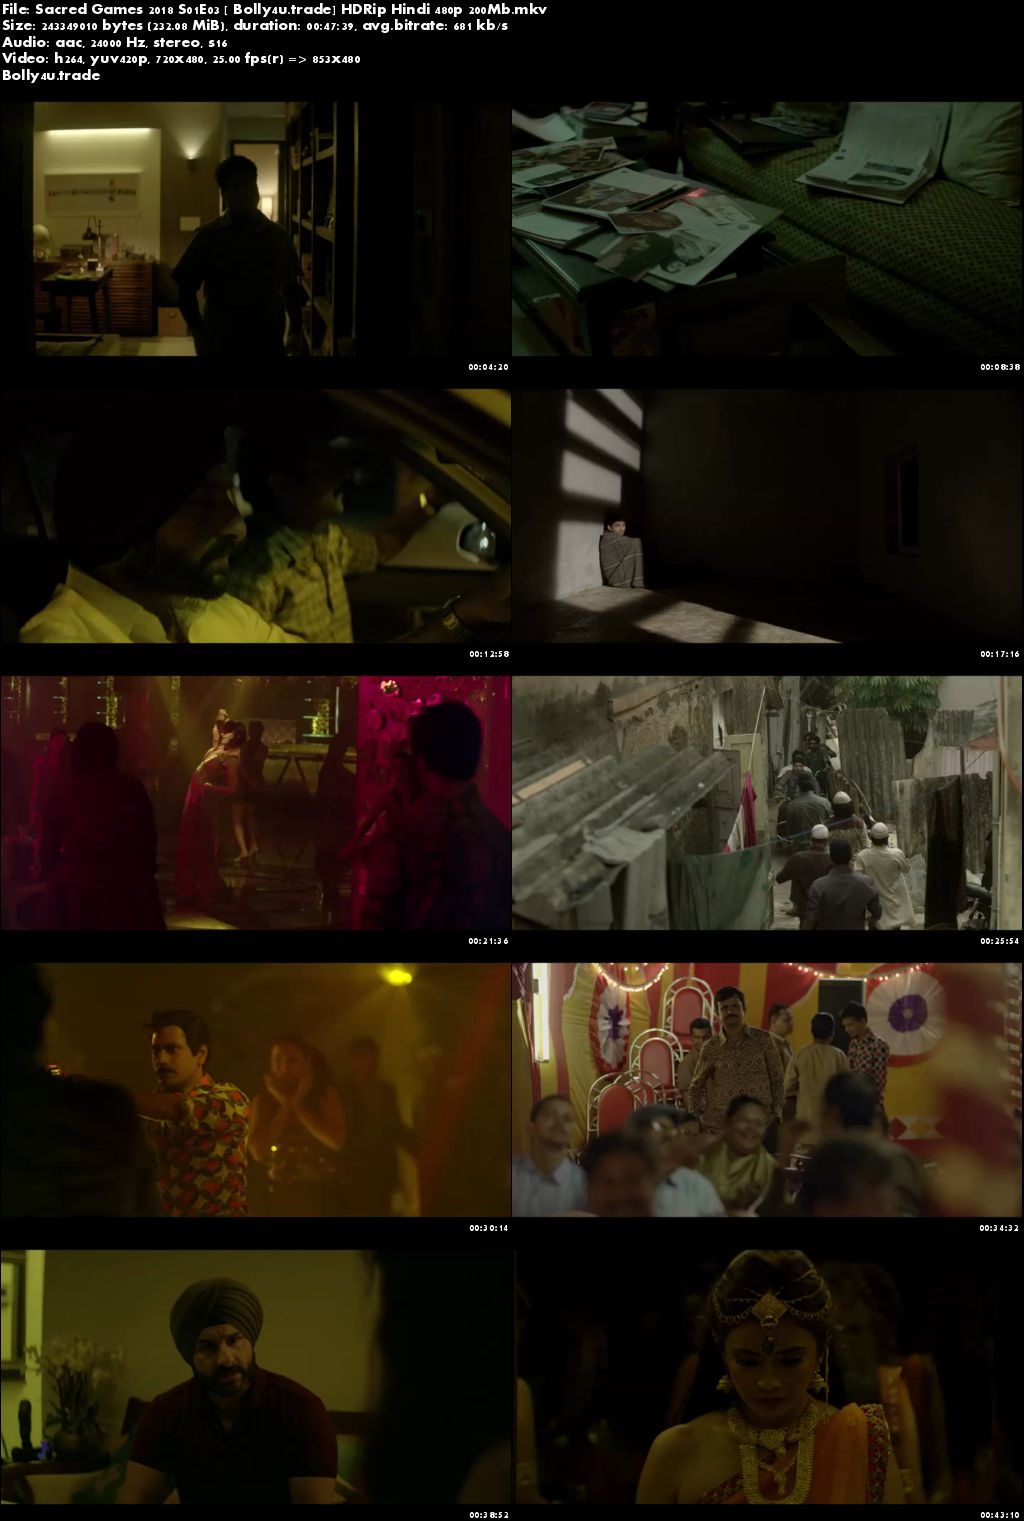 Sacred Games 2018 S01E03 HDRip 200MB Hindi 480p Download